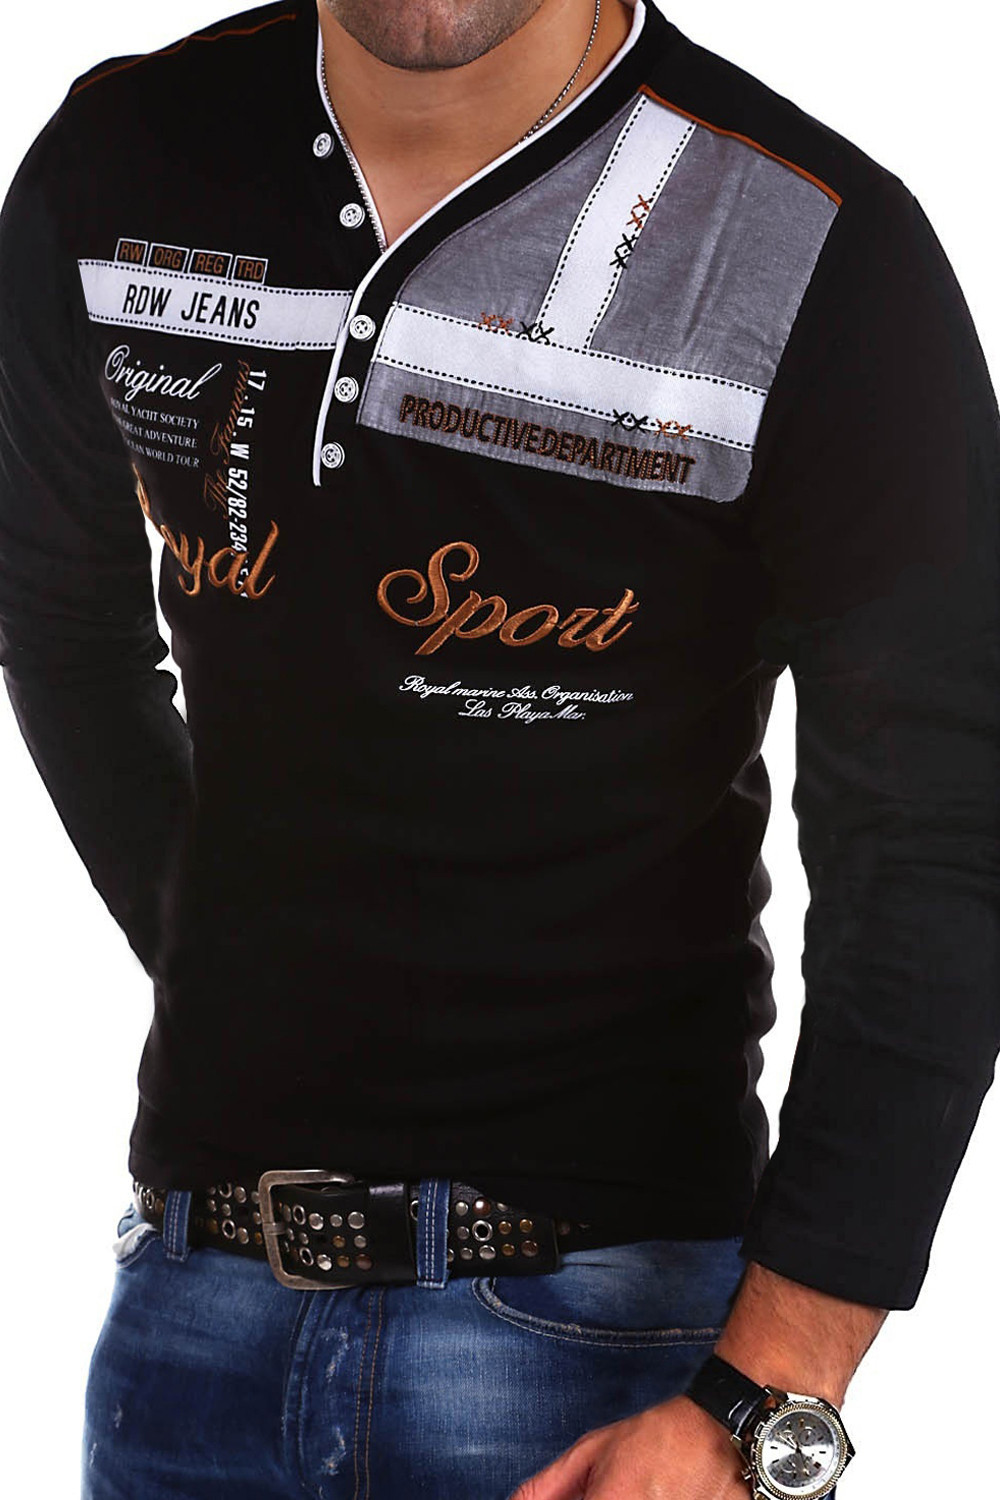 MEN'S T-shirt 2019 Summer Men Fashion And Personality Long Sleeve Polo Shirt <font><b>T9800</b></font> image